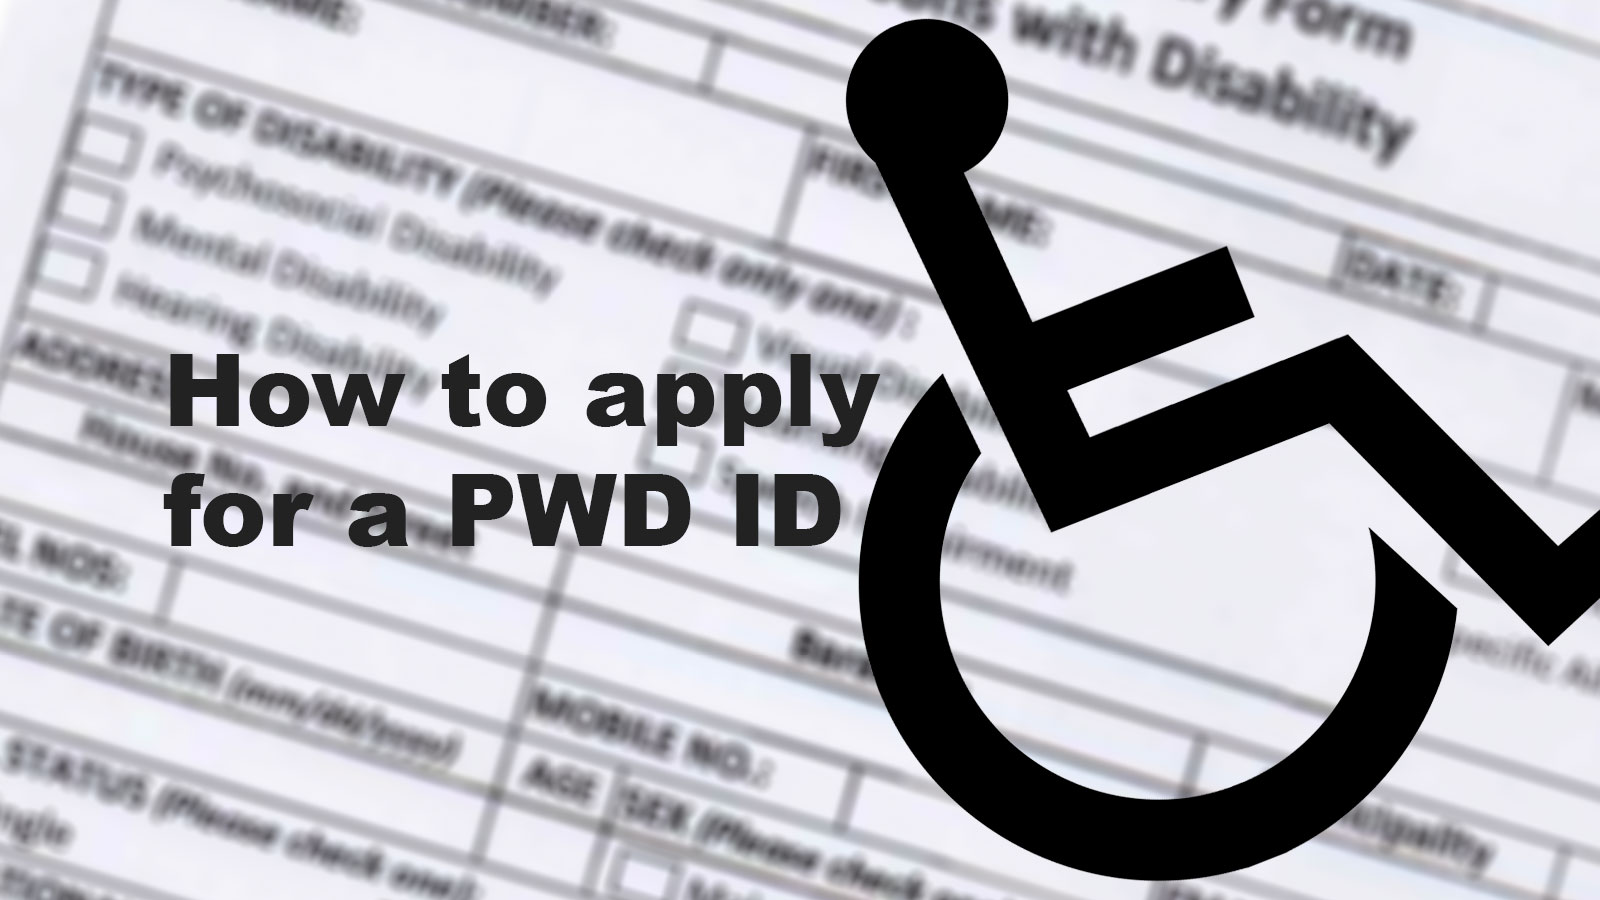 How to apply for a PWD ID in the Philippines